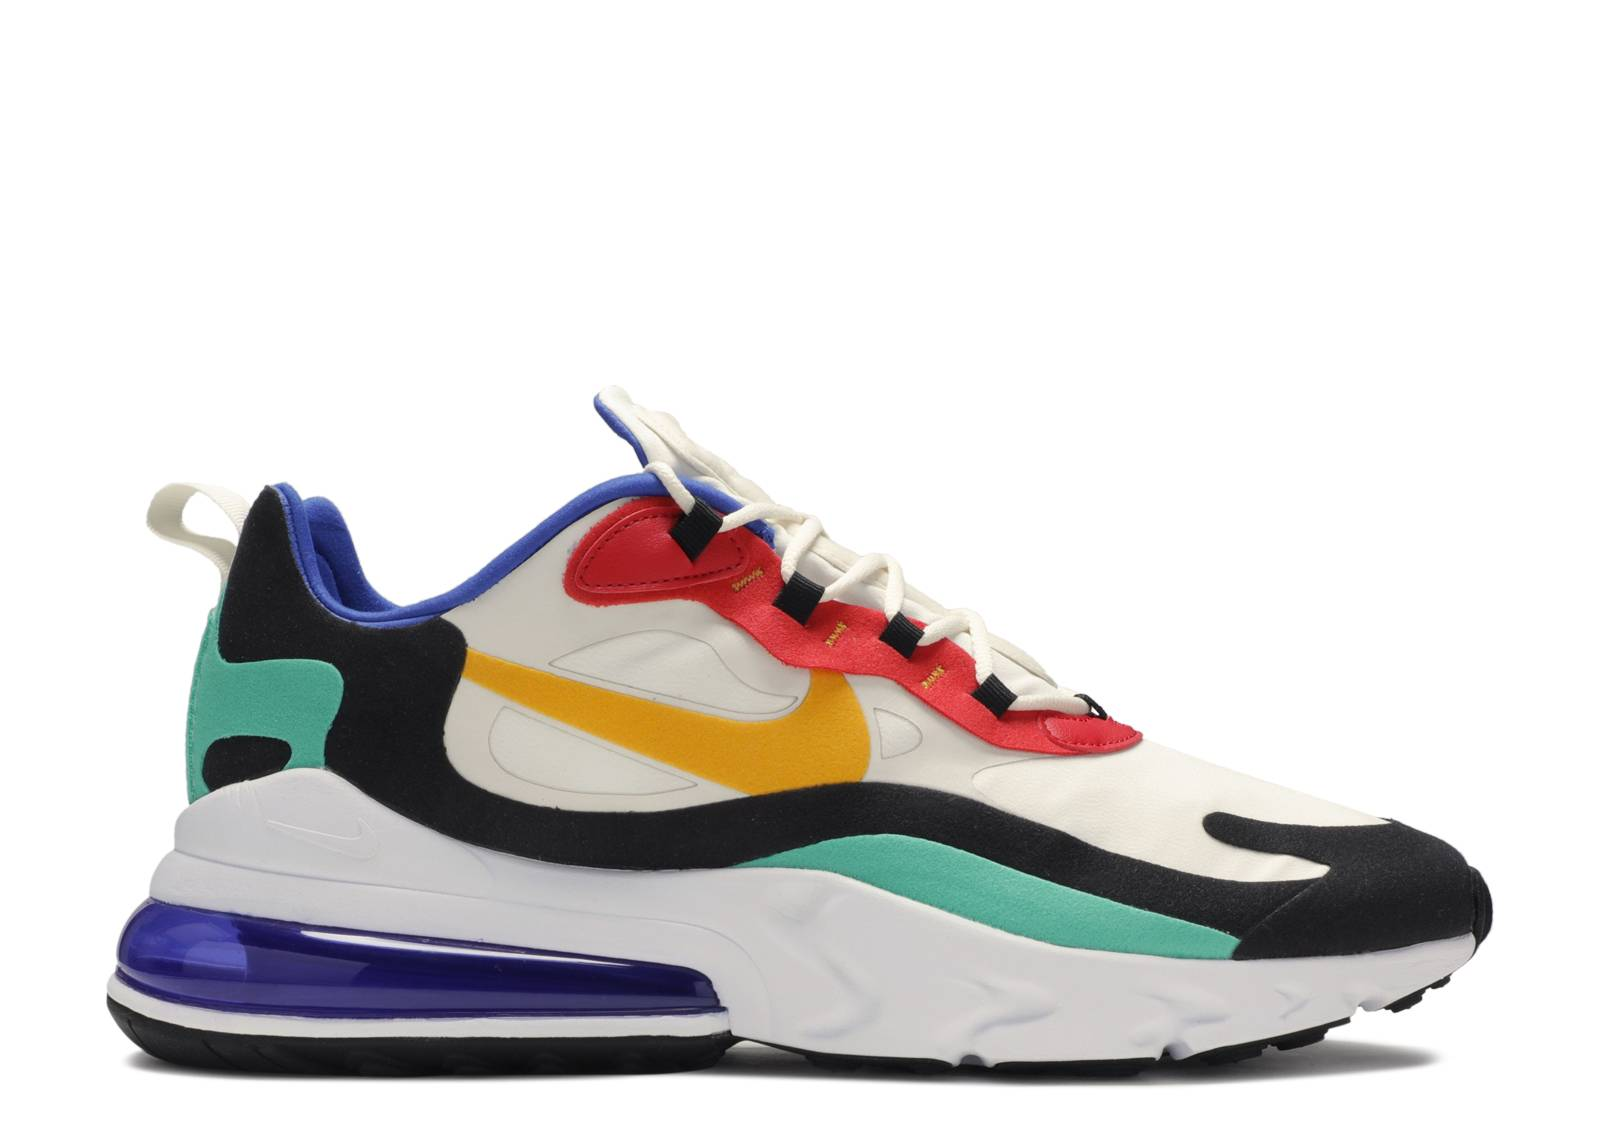 Nike Air Max 270 React Phantom University Gold University